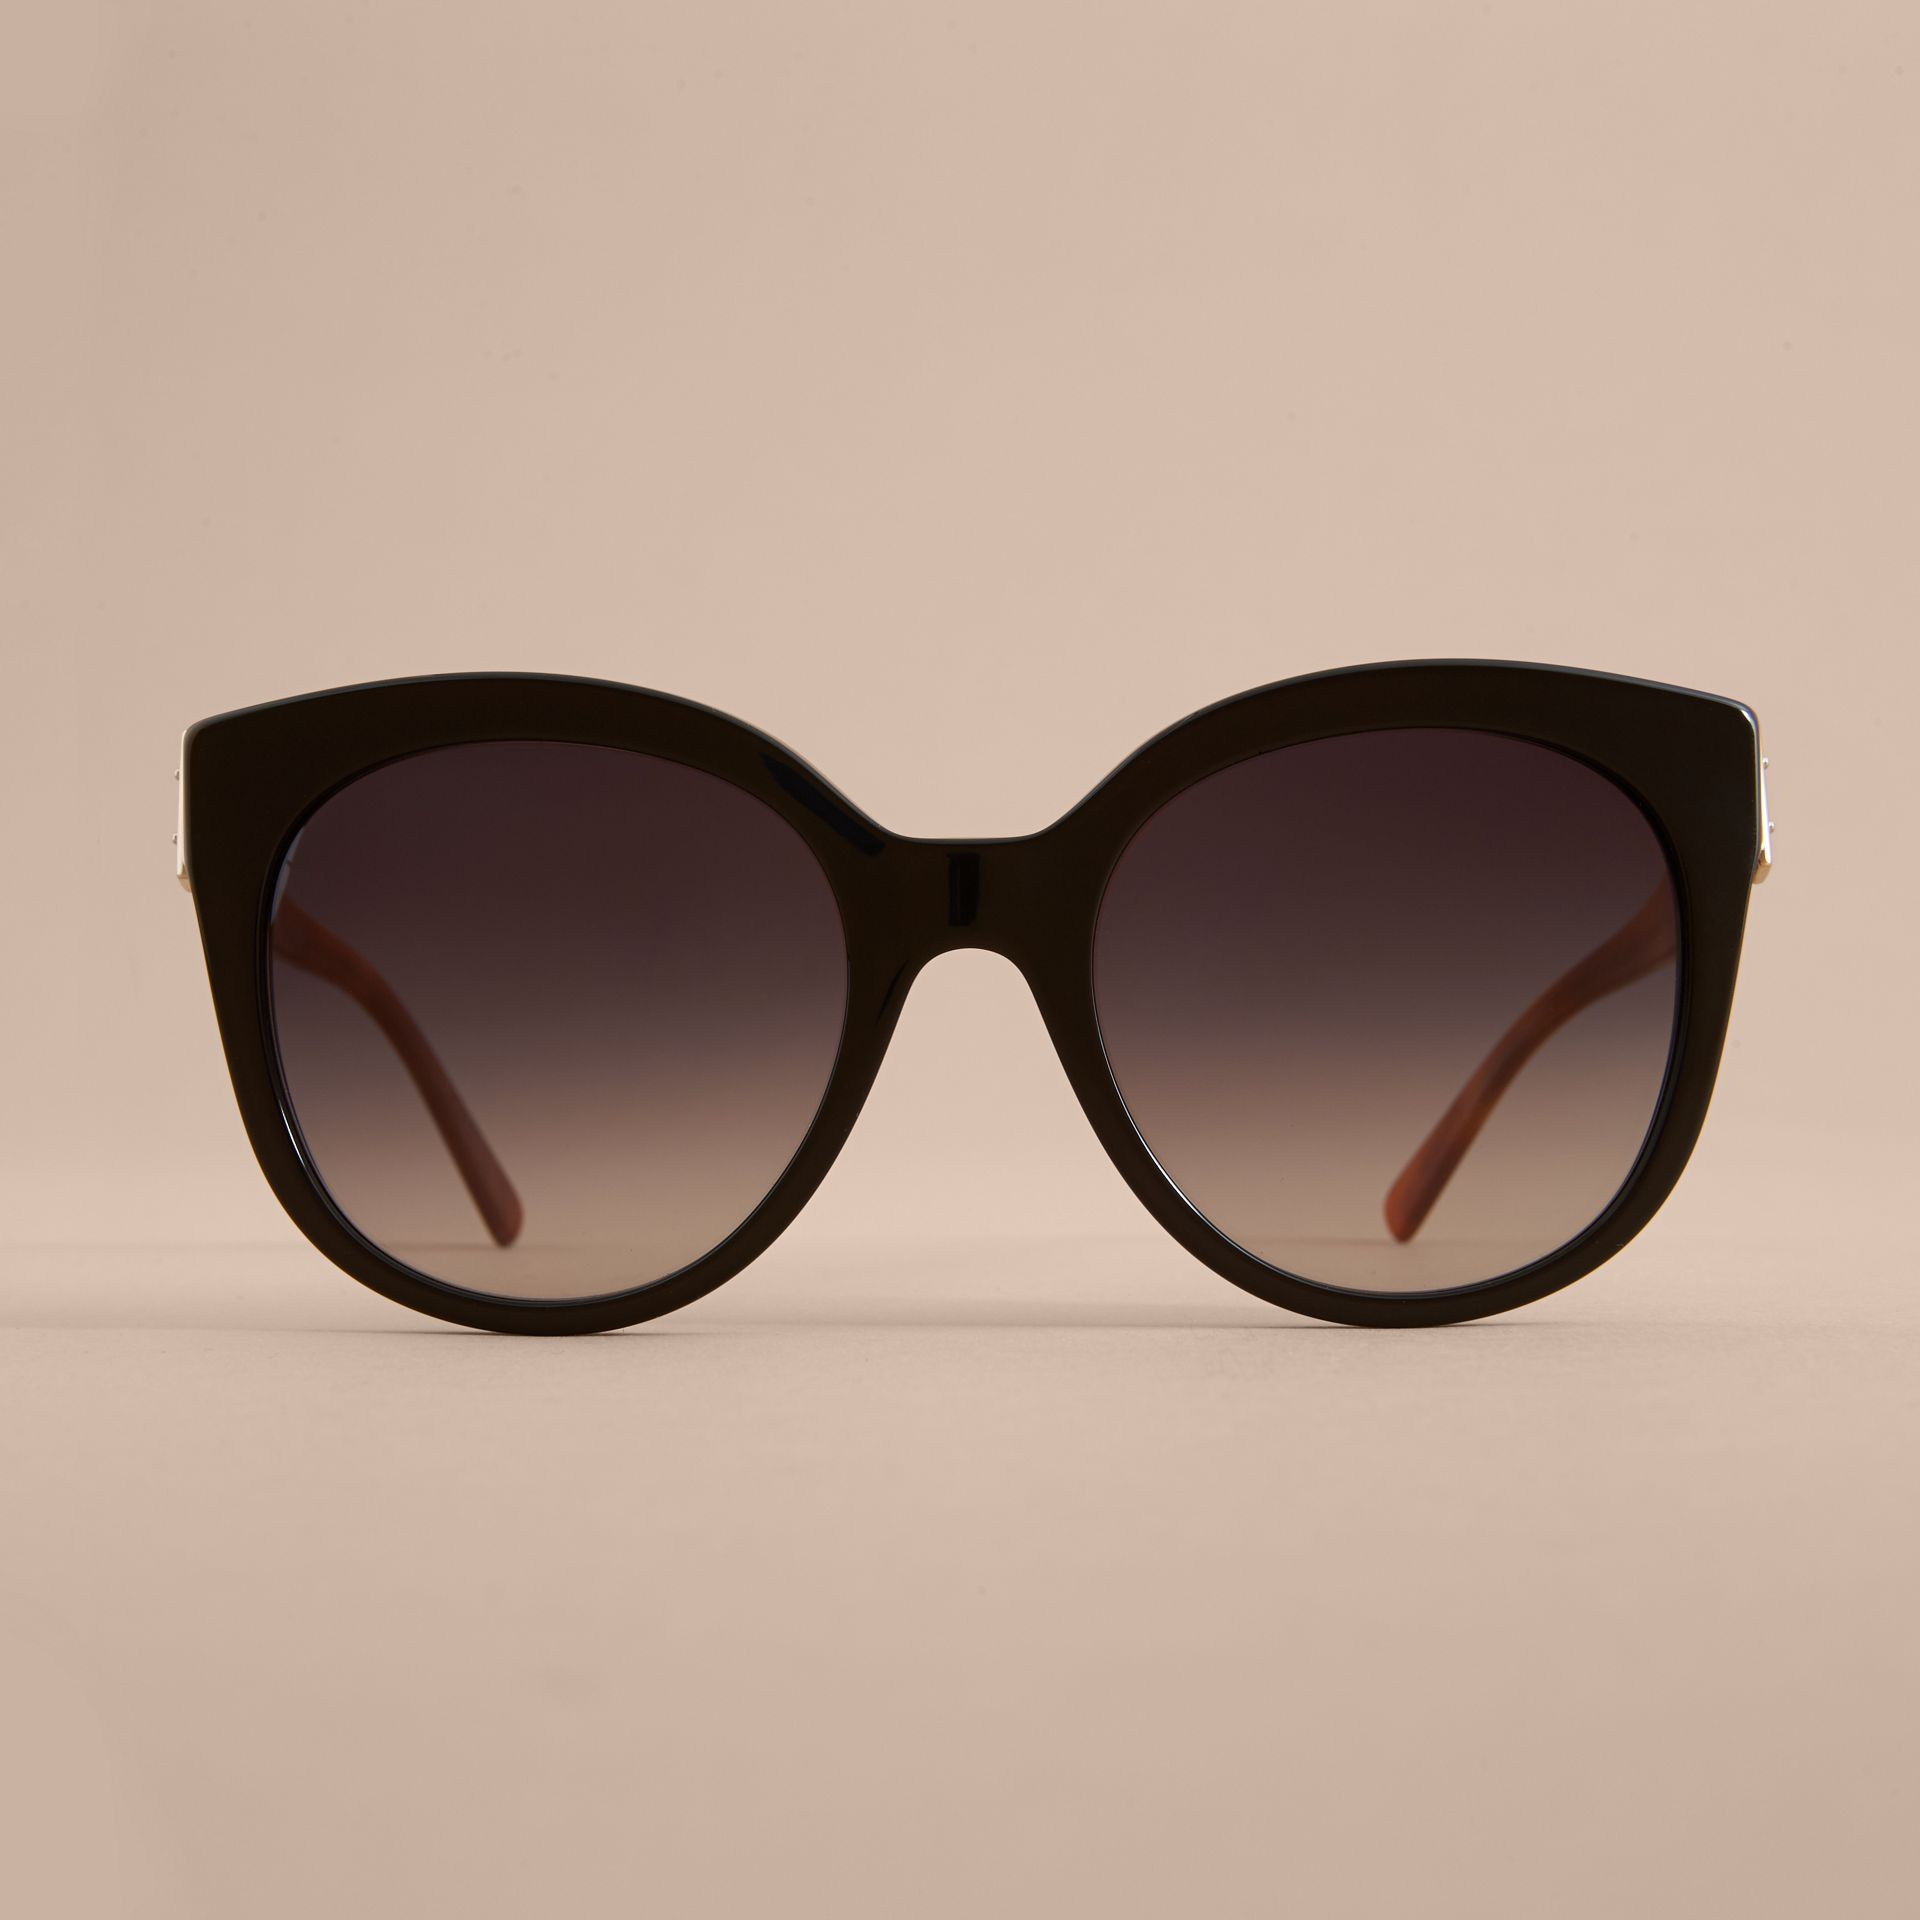 Buckle Detail Cat-eye Frame Sunglasses in Black - Women | Burberry Singapore - gallery image 2